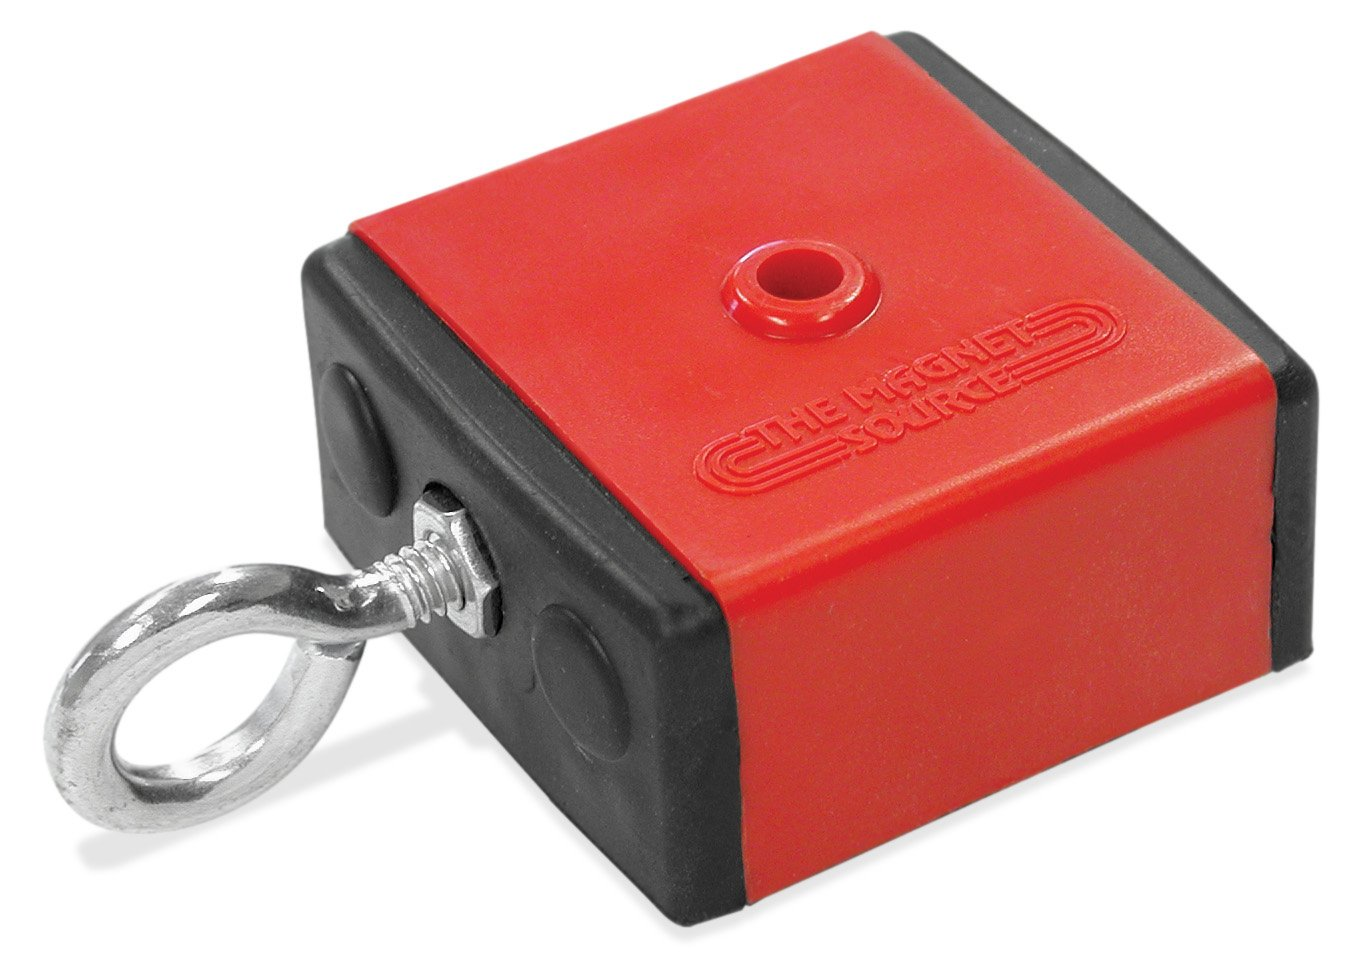 Master Magnetics 07503 Retrieving and Holding Magnet, Durable Plastic, 100 lb, 2.375'' Length, 2.375'' Width, 1.25'' Height with Eyebolt, Nuts and Magnetic Shields, Red/Black